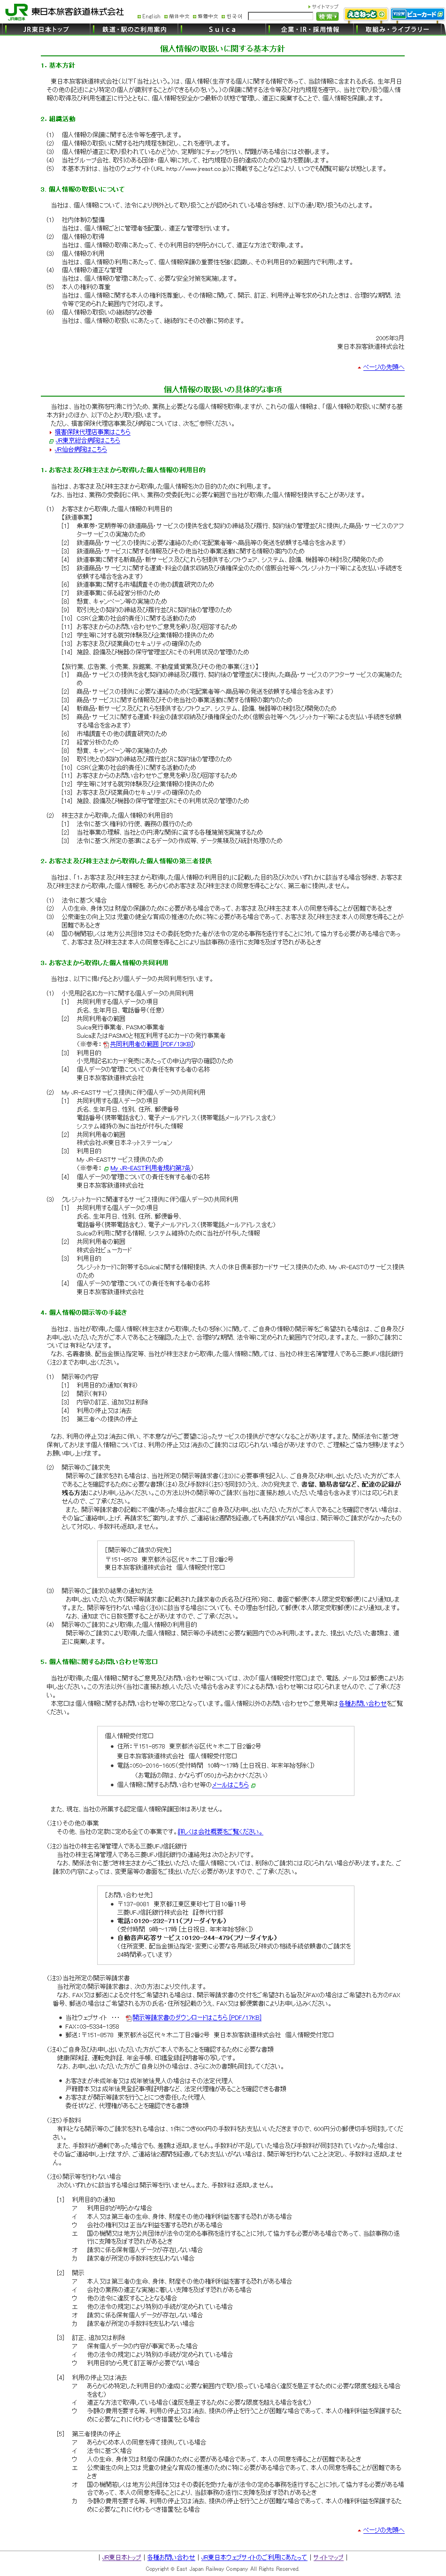 http://www.jreast.co.jp/site/privacy.html